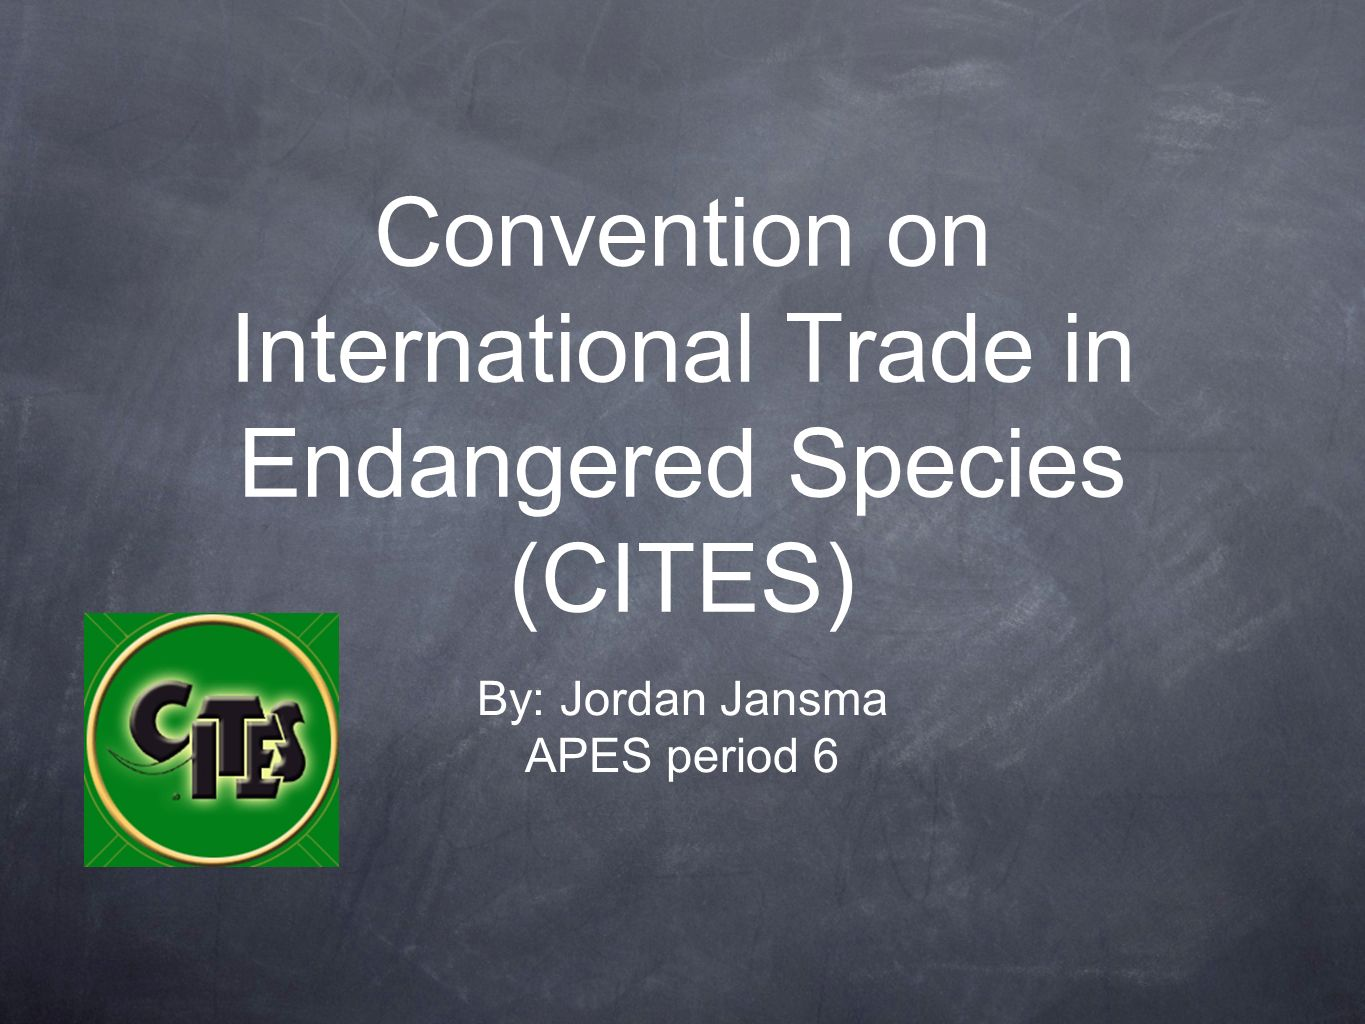 Convention on International Trade in Endangered Species (CITES) By: Jordan Jansma APES period 6